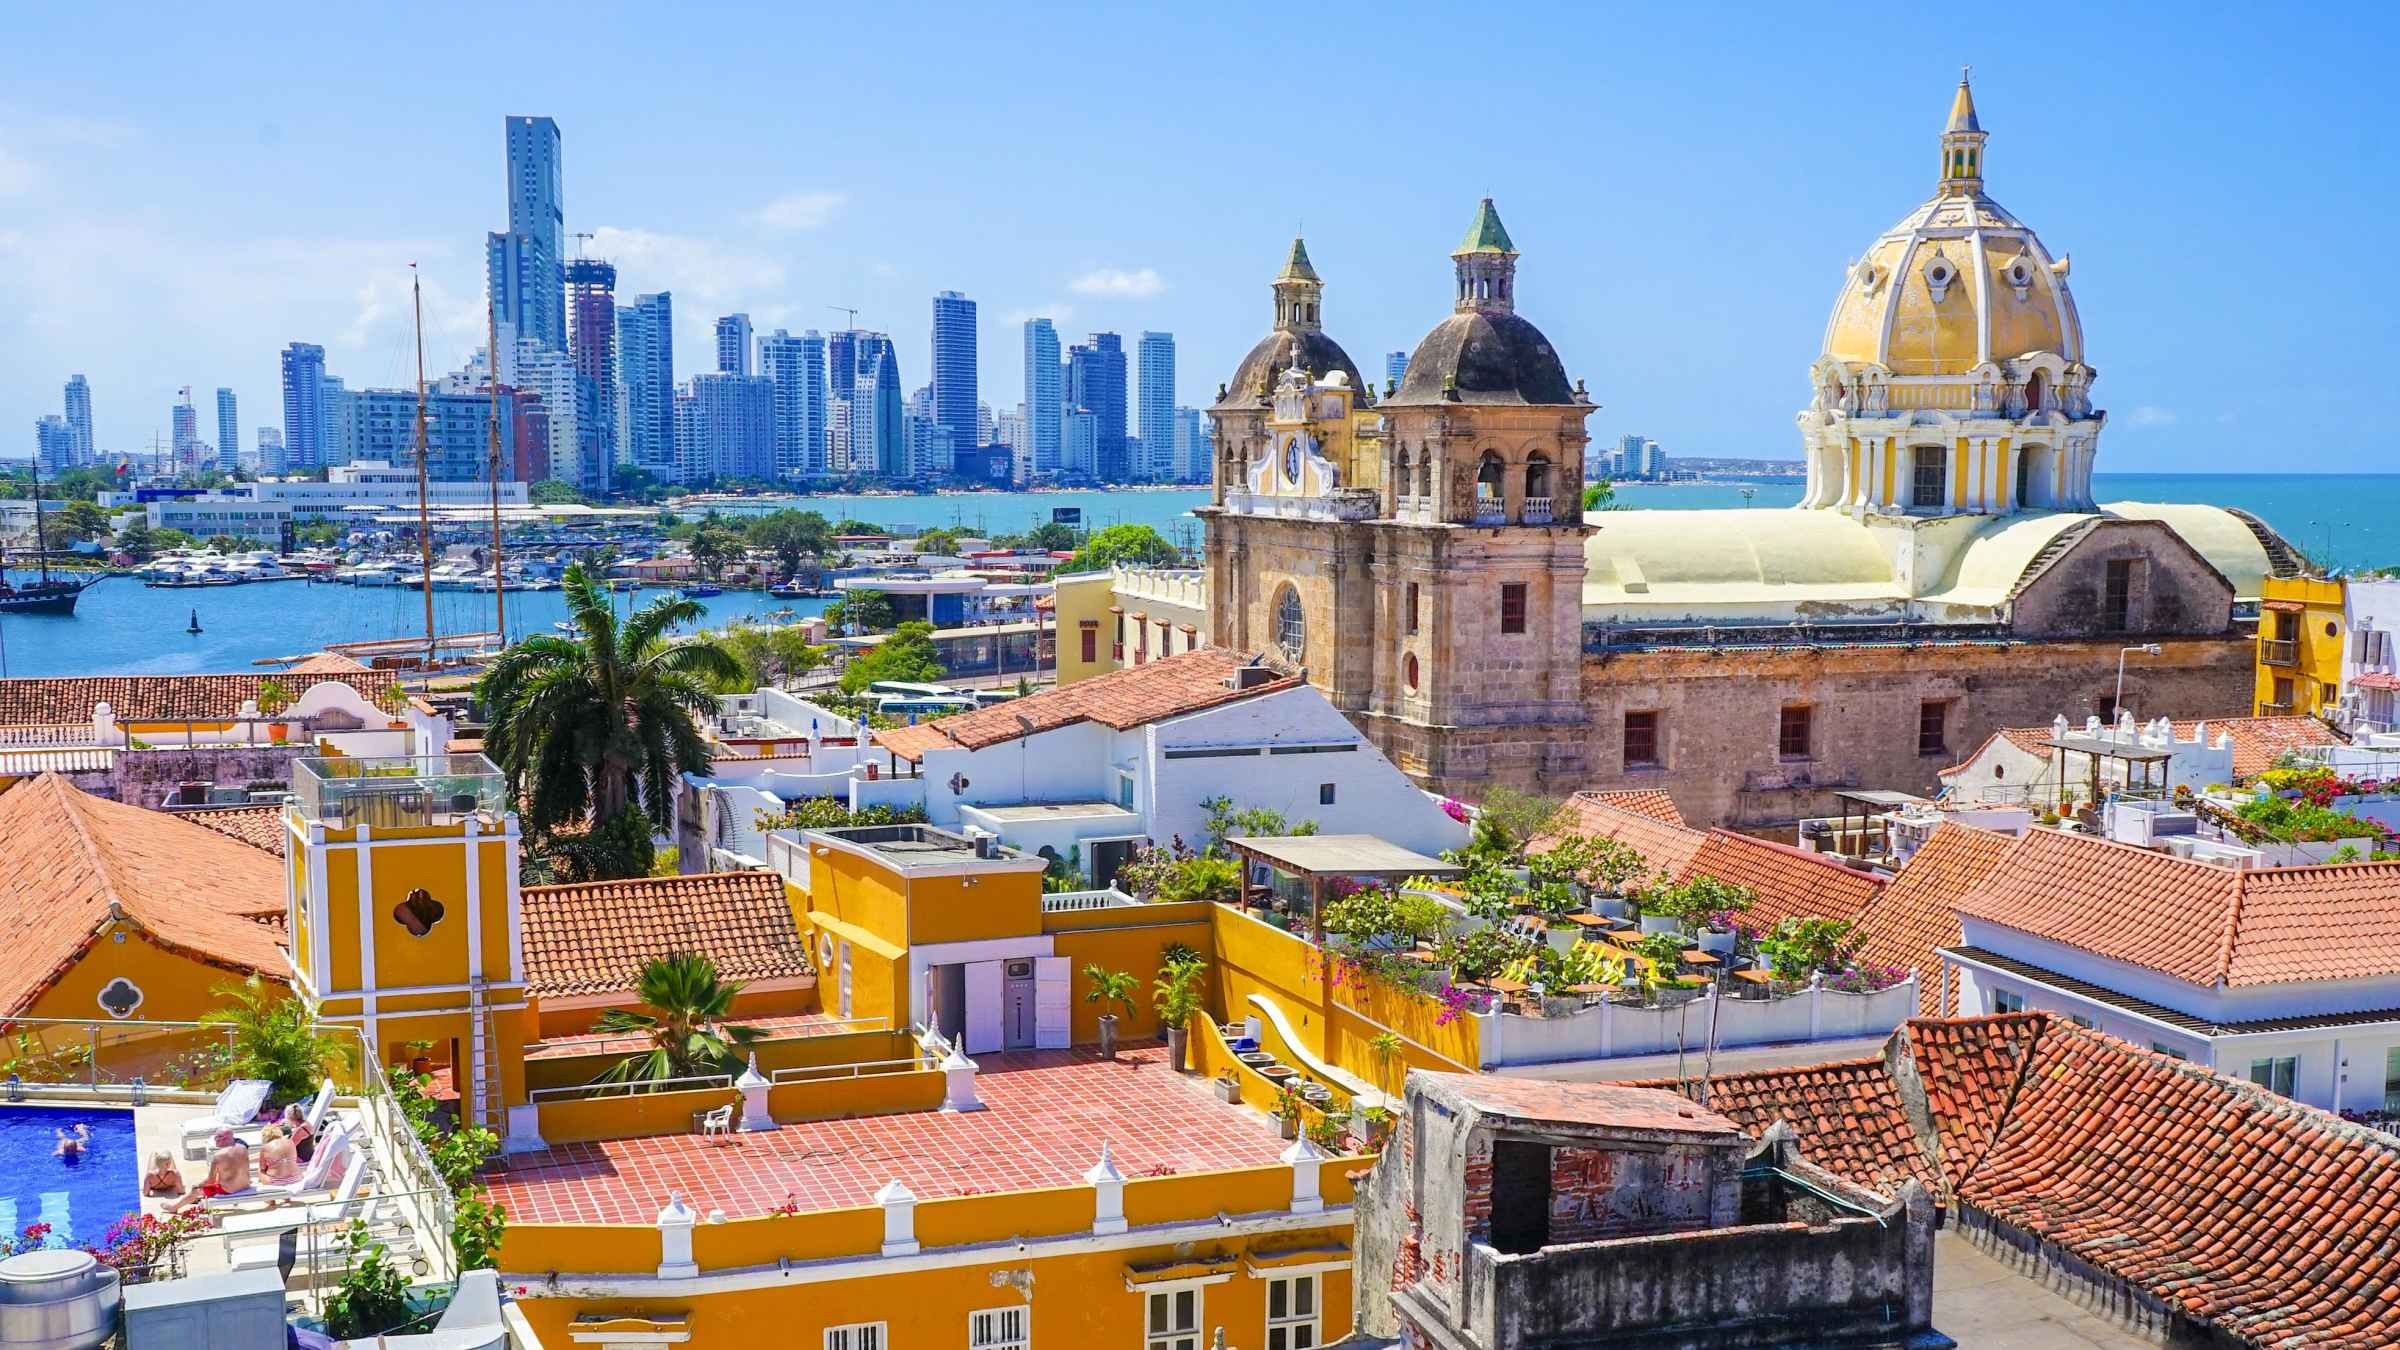 Cartagena, Colombia Airport Transfers - Bus & Van Transport in Colombia 2021 | GetYourGuide